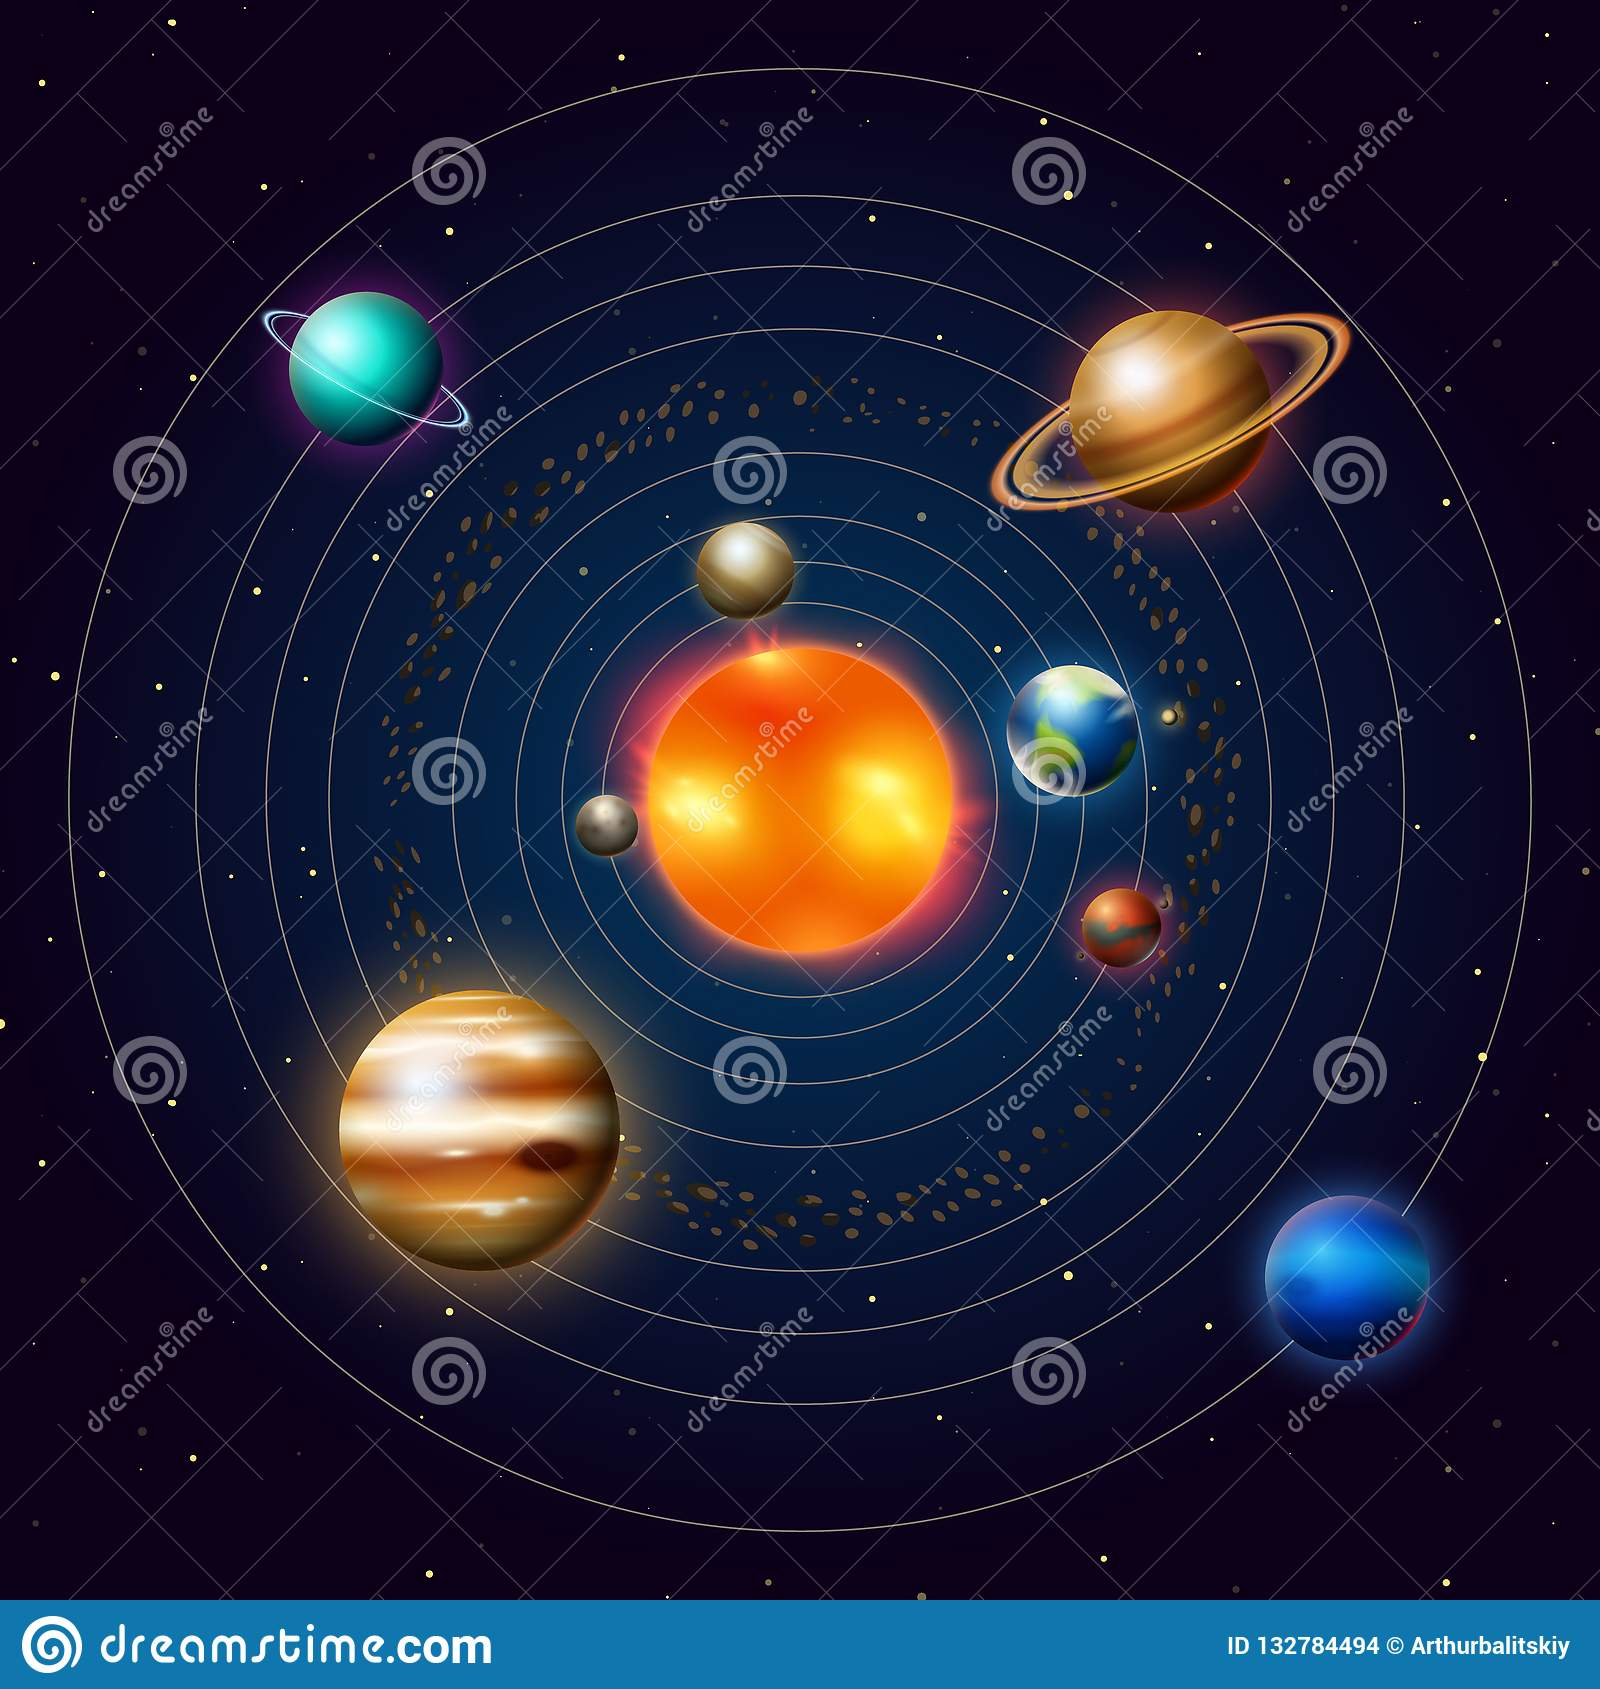 Planets Of The Solar System Or Model In Orbit Milky Way